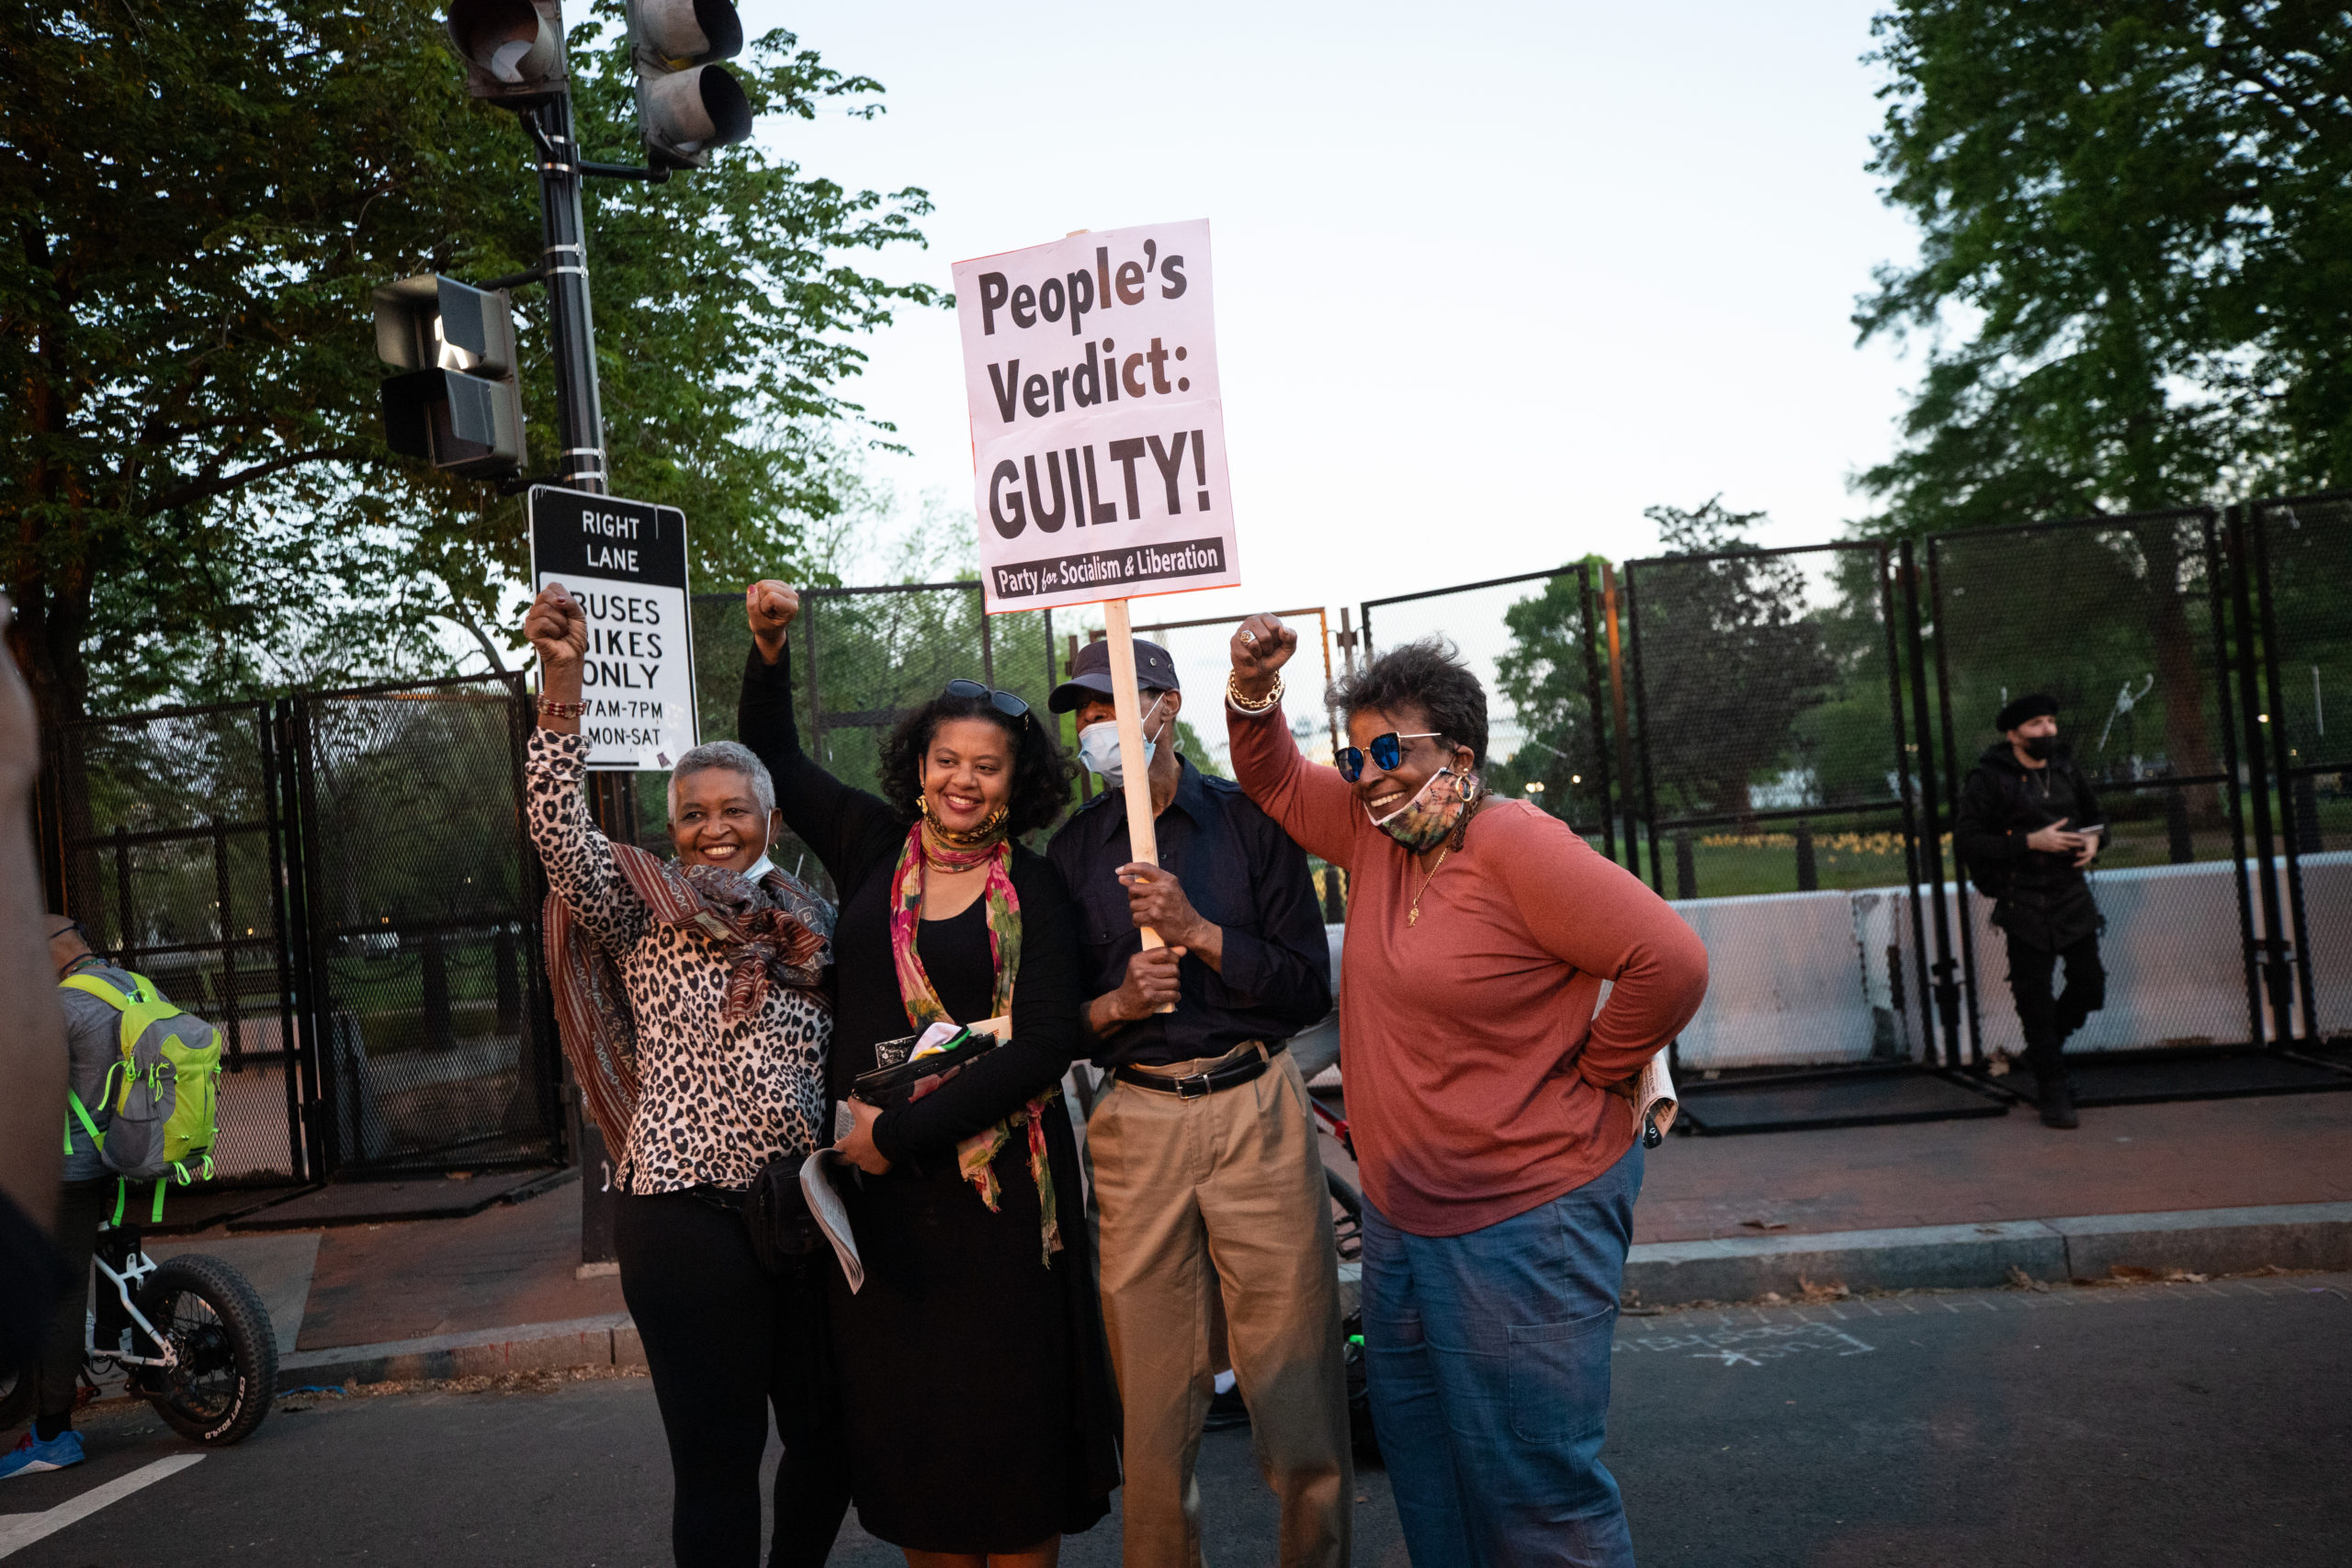 People raised their fists and posed for photographs at Black Lives Matter Plaza after the jury's decision in the Derek Chauvin trial was announced on April 20, 2021, in Washington, D.C. (Kaylee Greenlee - Daily Caller News Foundation)